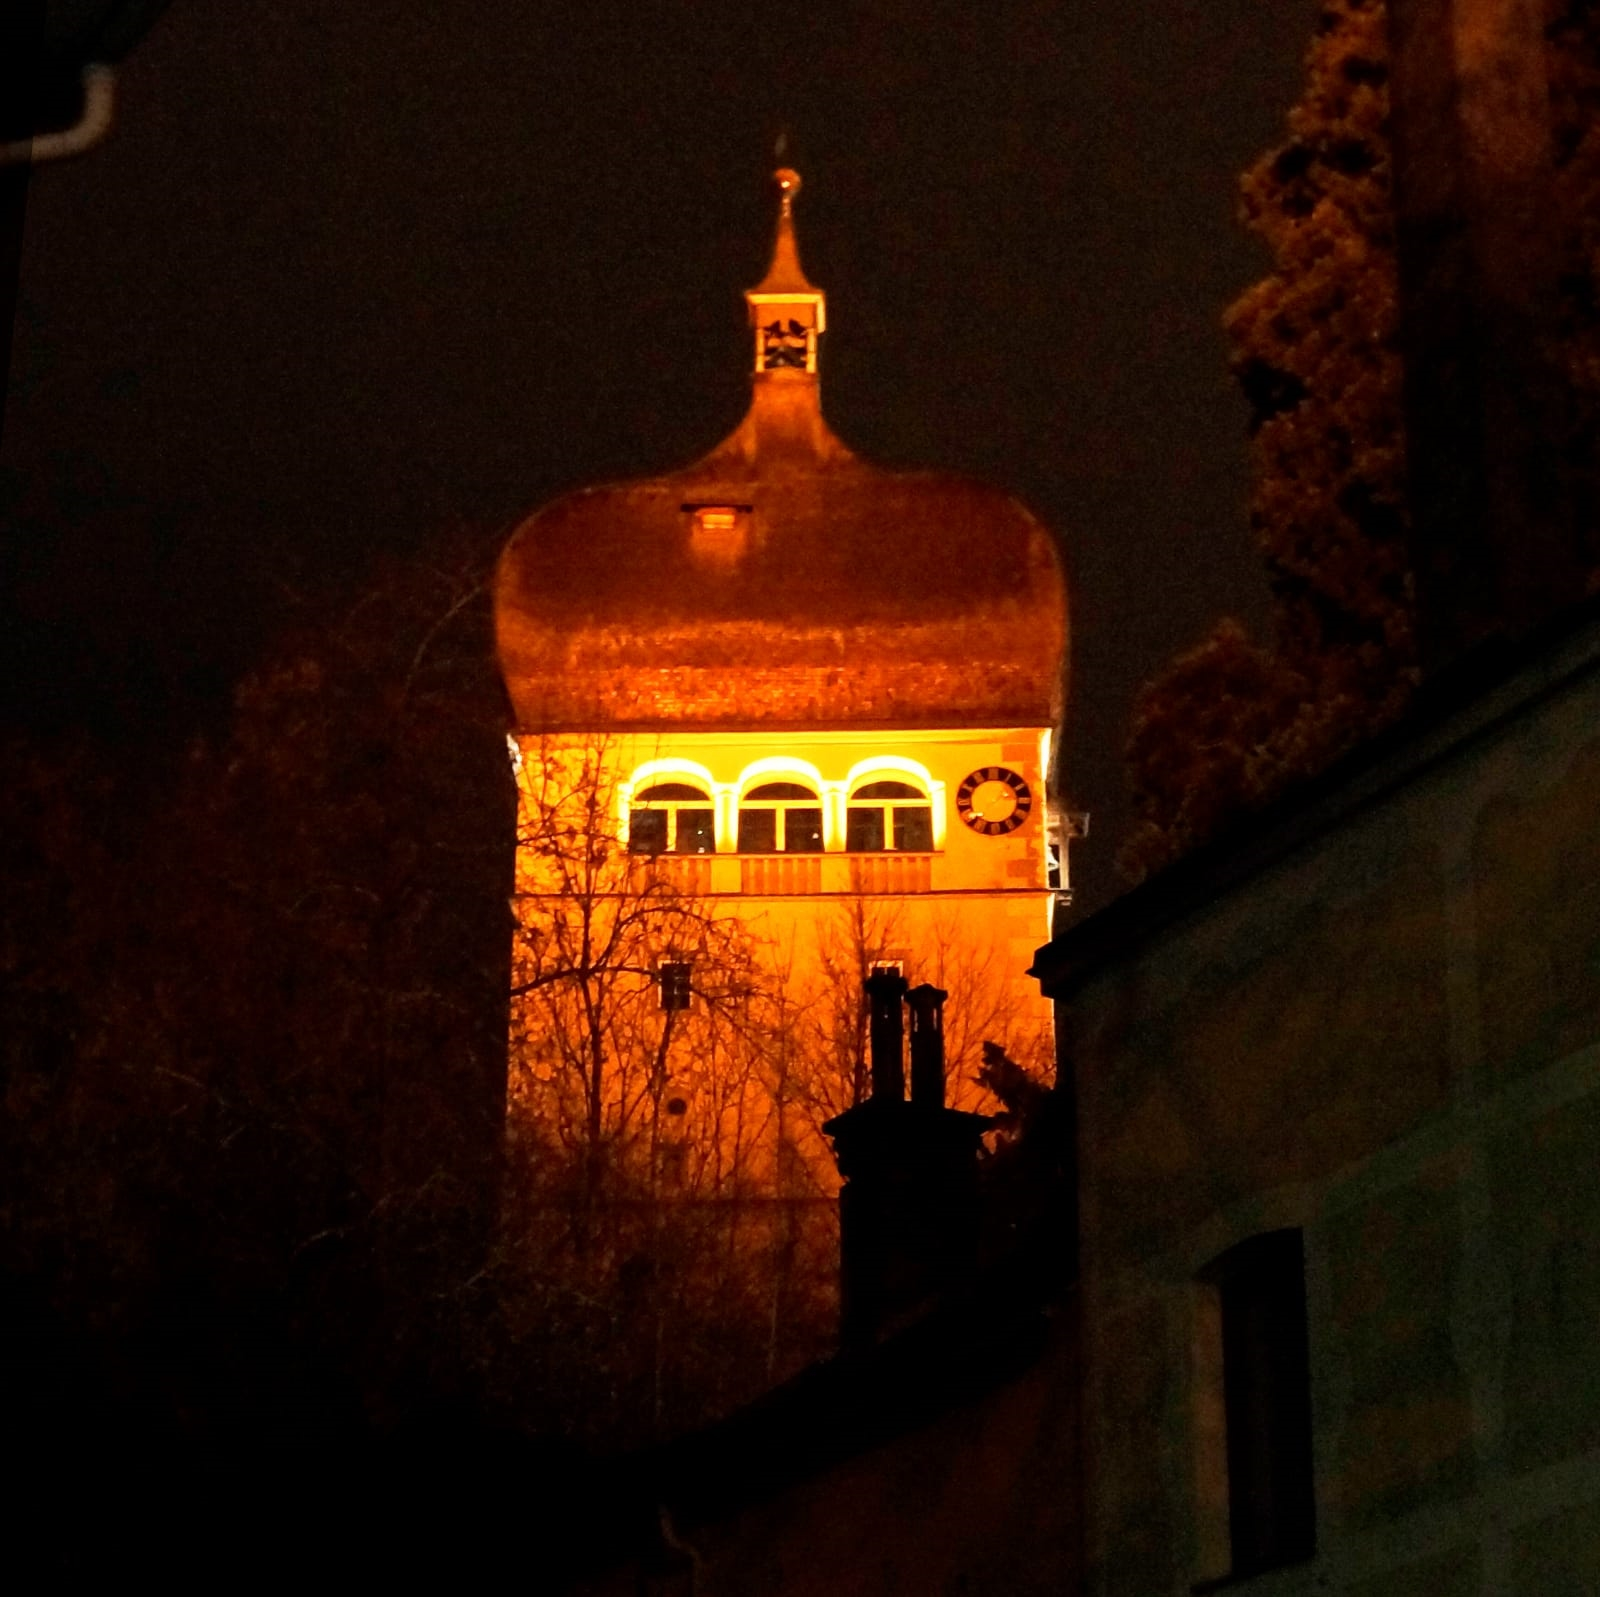 der 'Martinsturm in 'Orange'